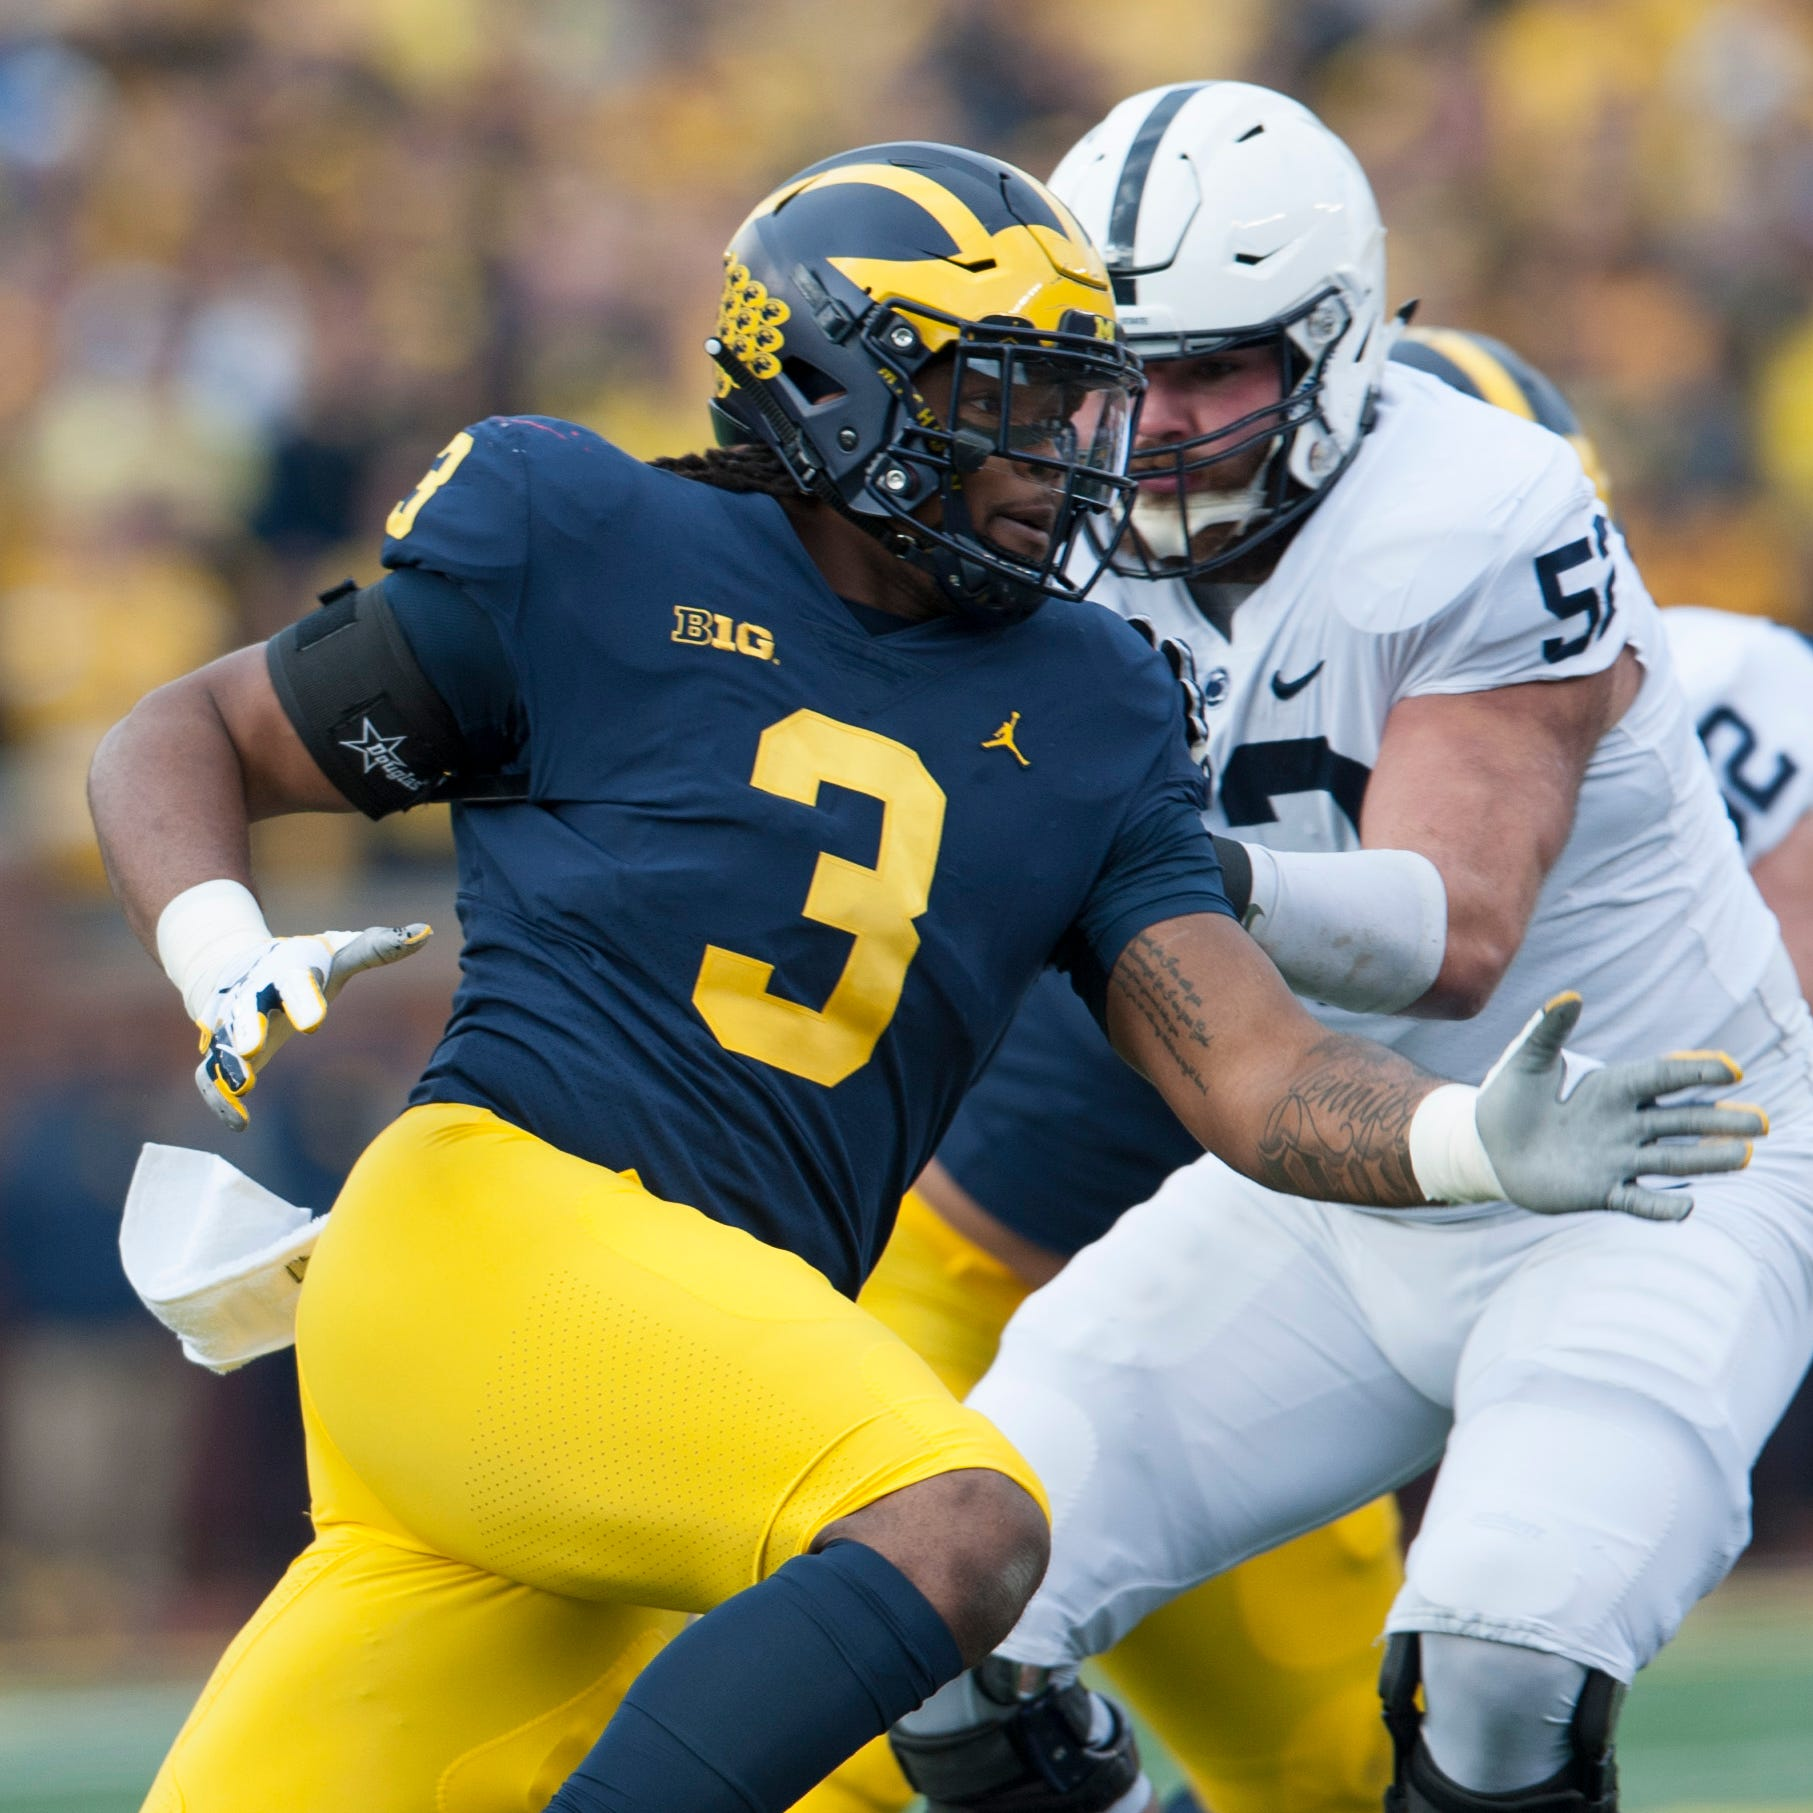 Kiper: Ex-Michigan standout Rashan Gary must be 'freak' to warrant high pick in NFL Draft